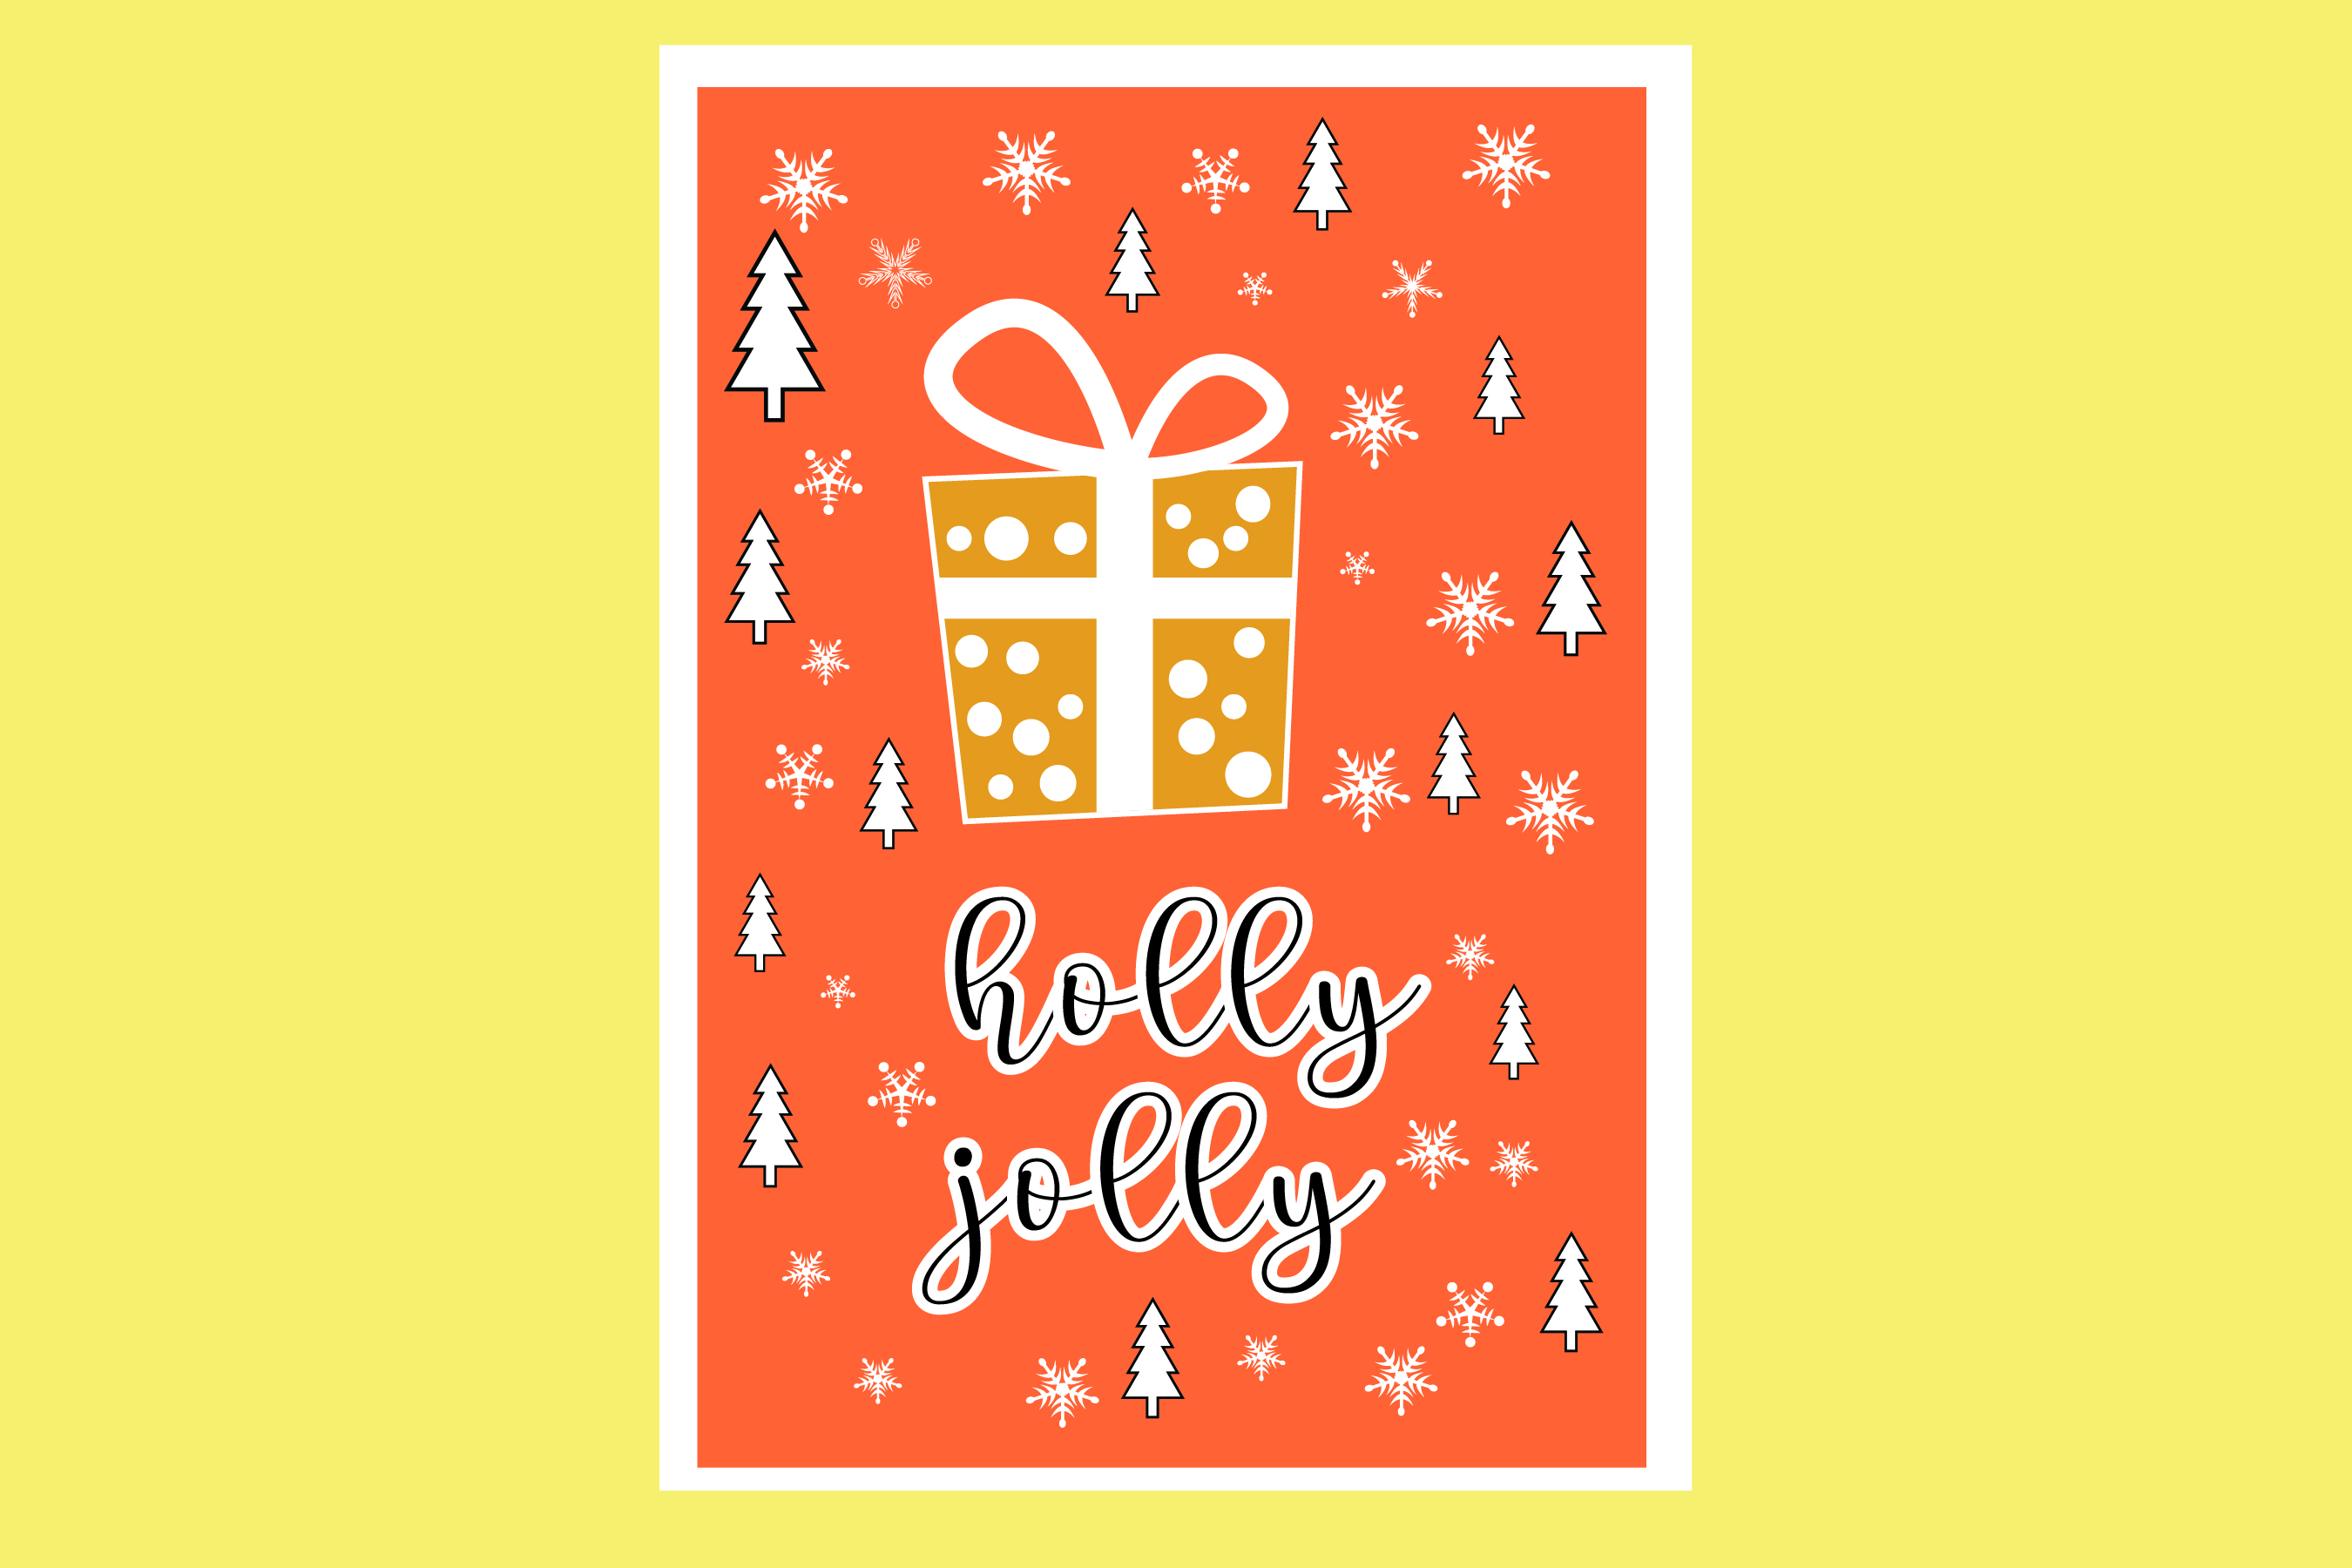 AA25-Christmas Greetings cards 6 Designs - SVG Bundle example image 3